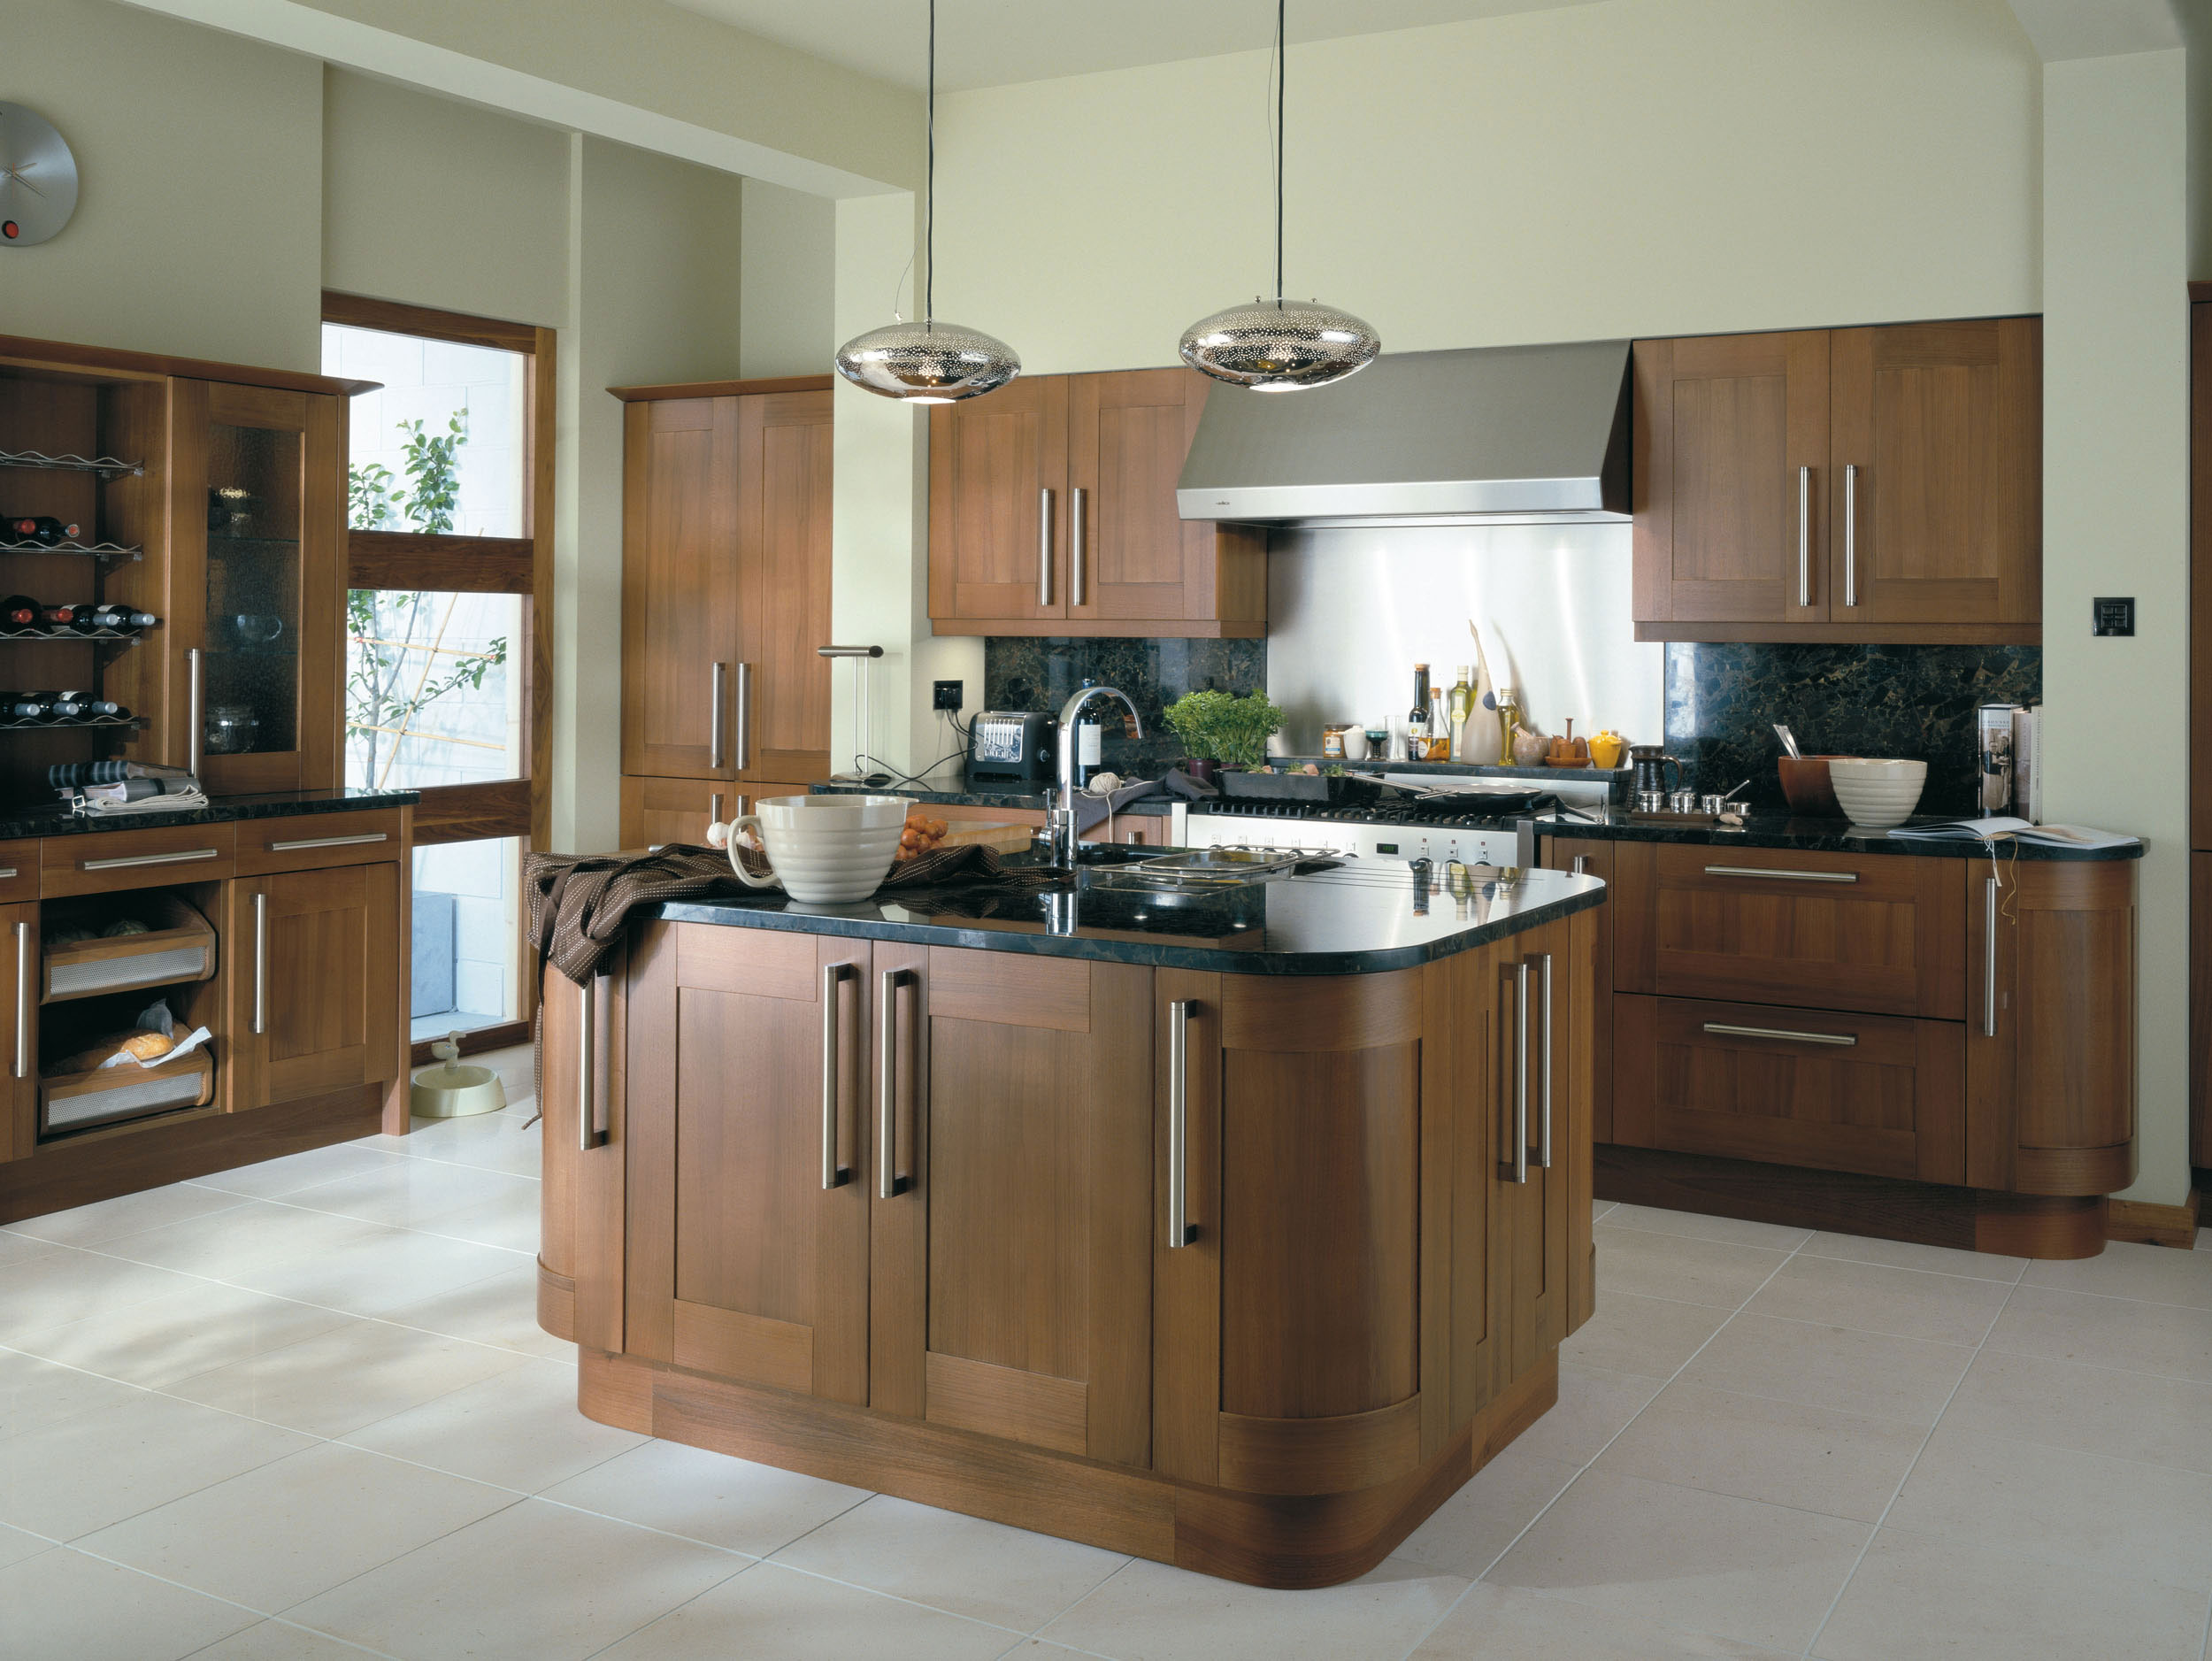 Estro walnut from eaton kitchen designs wolverhampton for Walnut kitchen designs